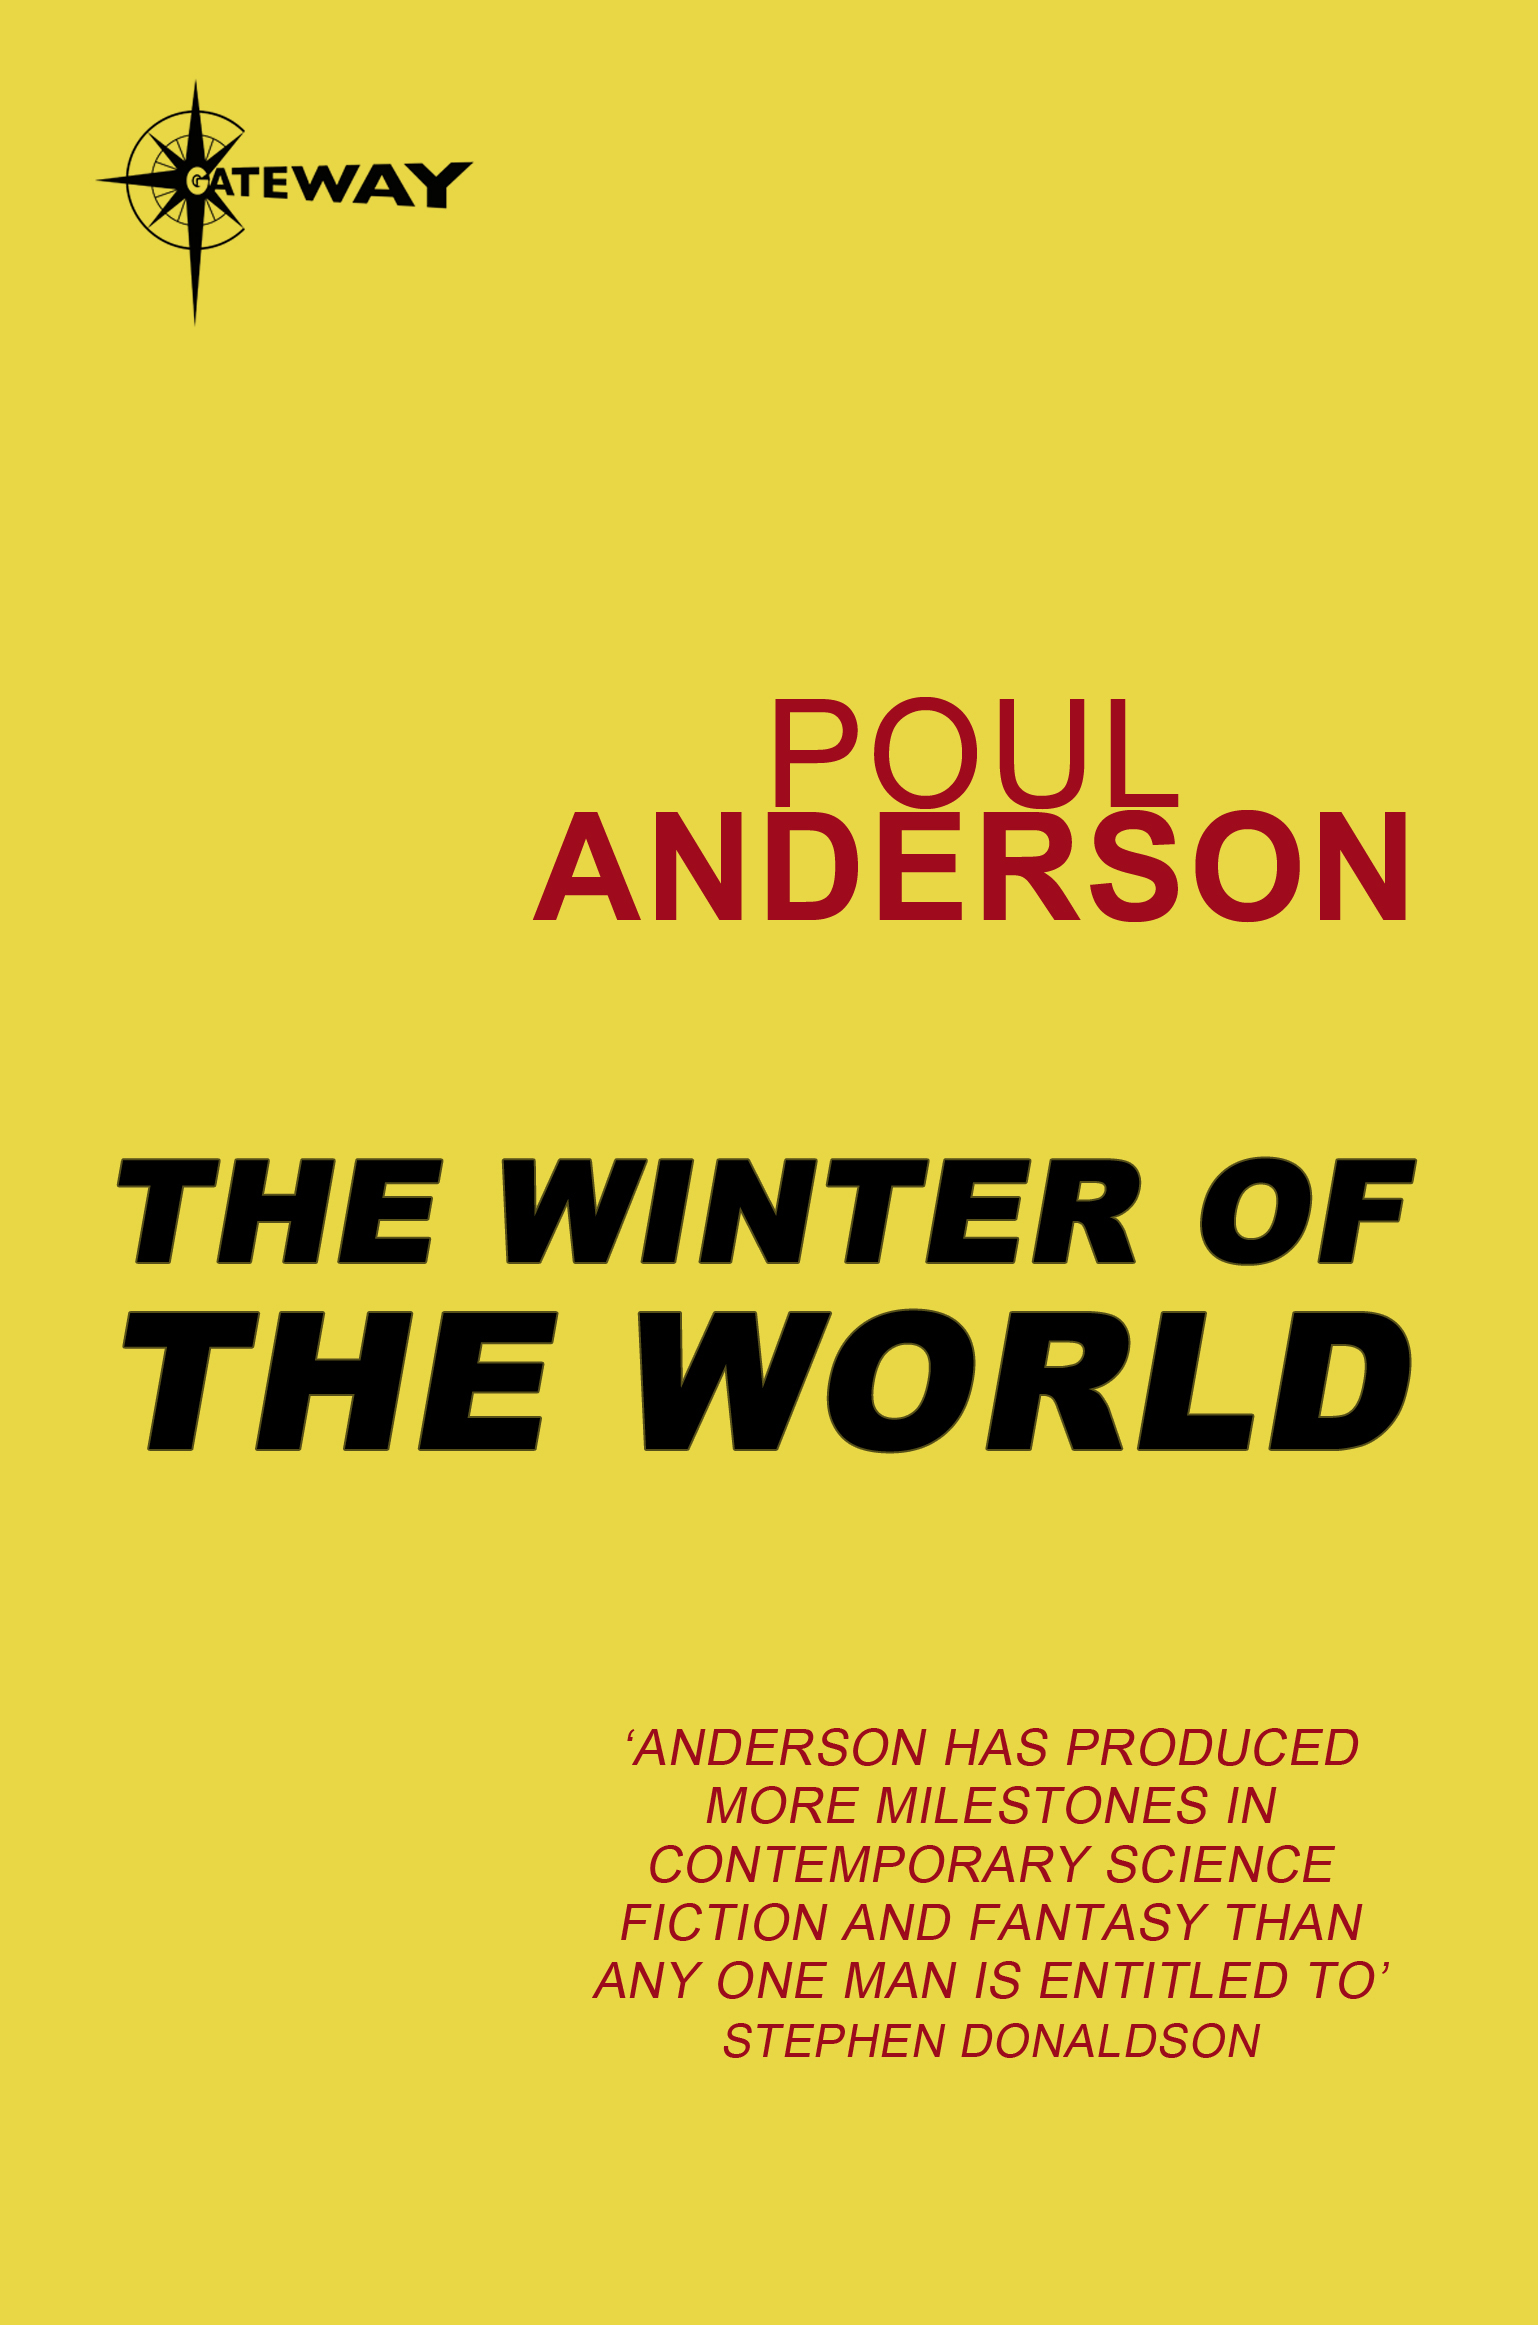 The Winter of the World